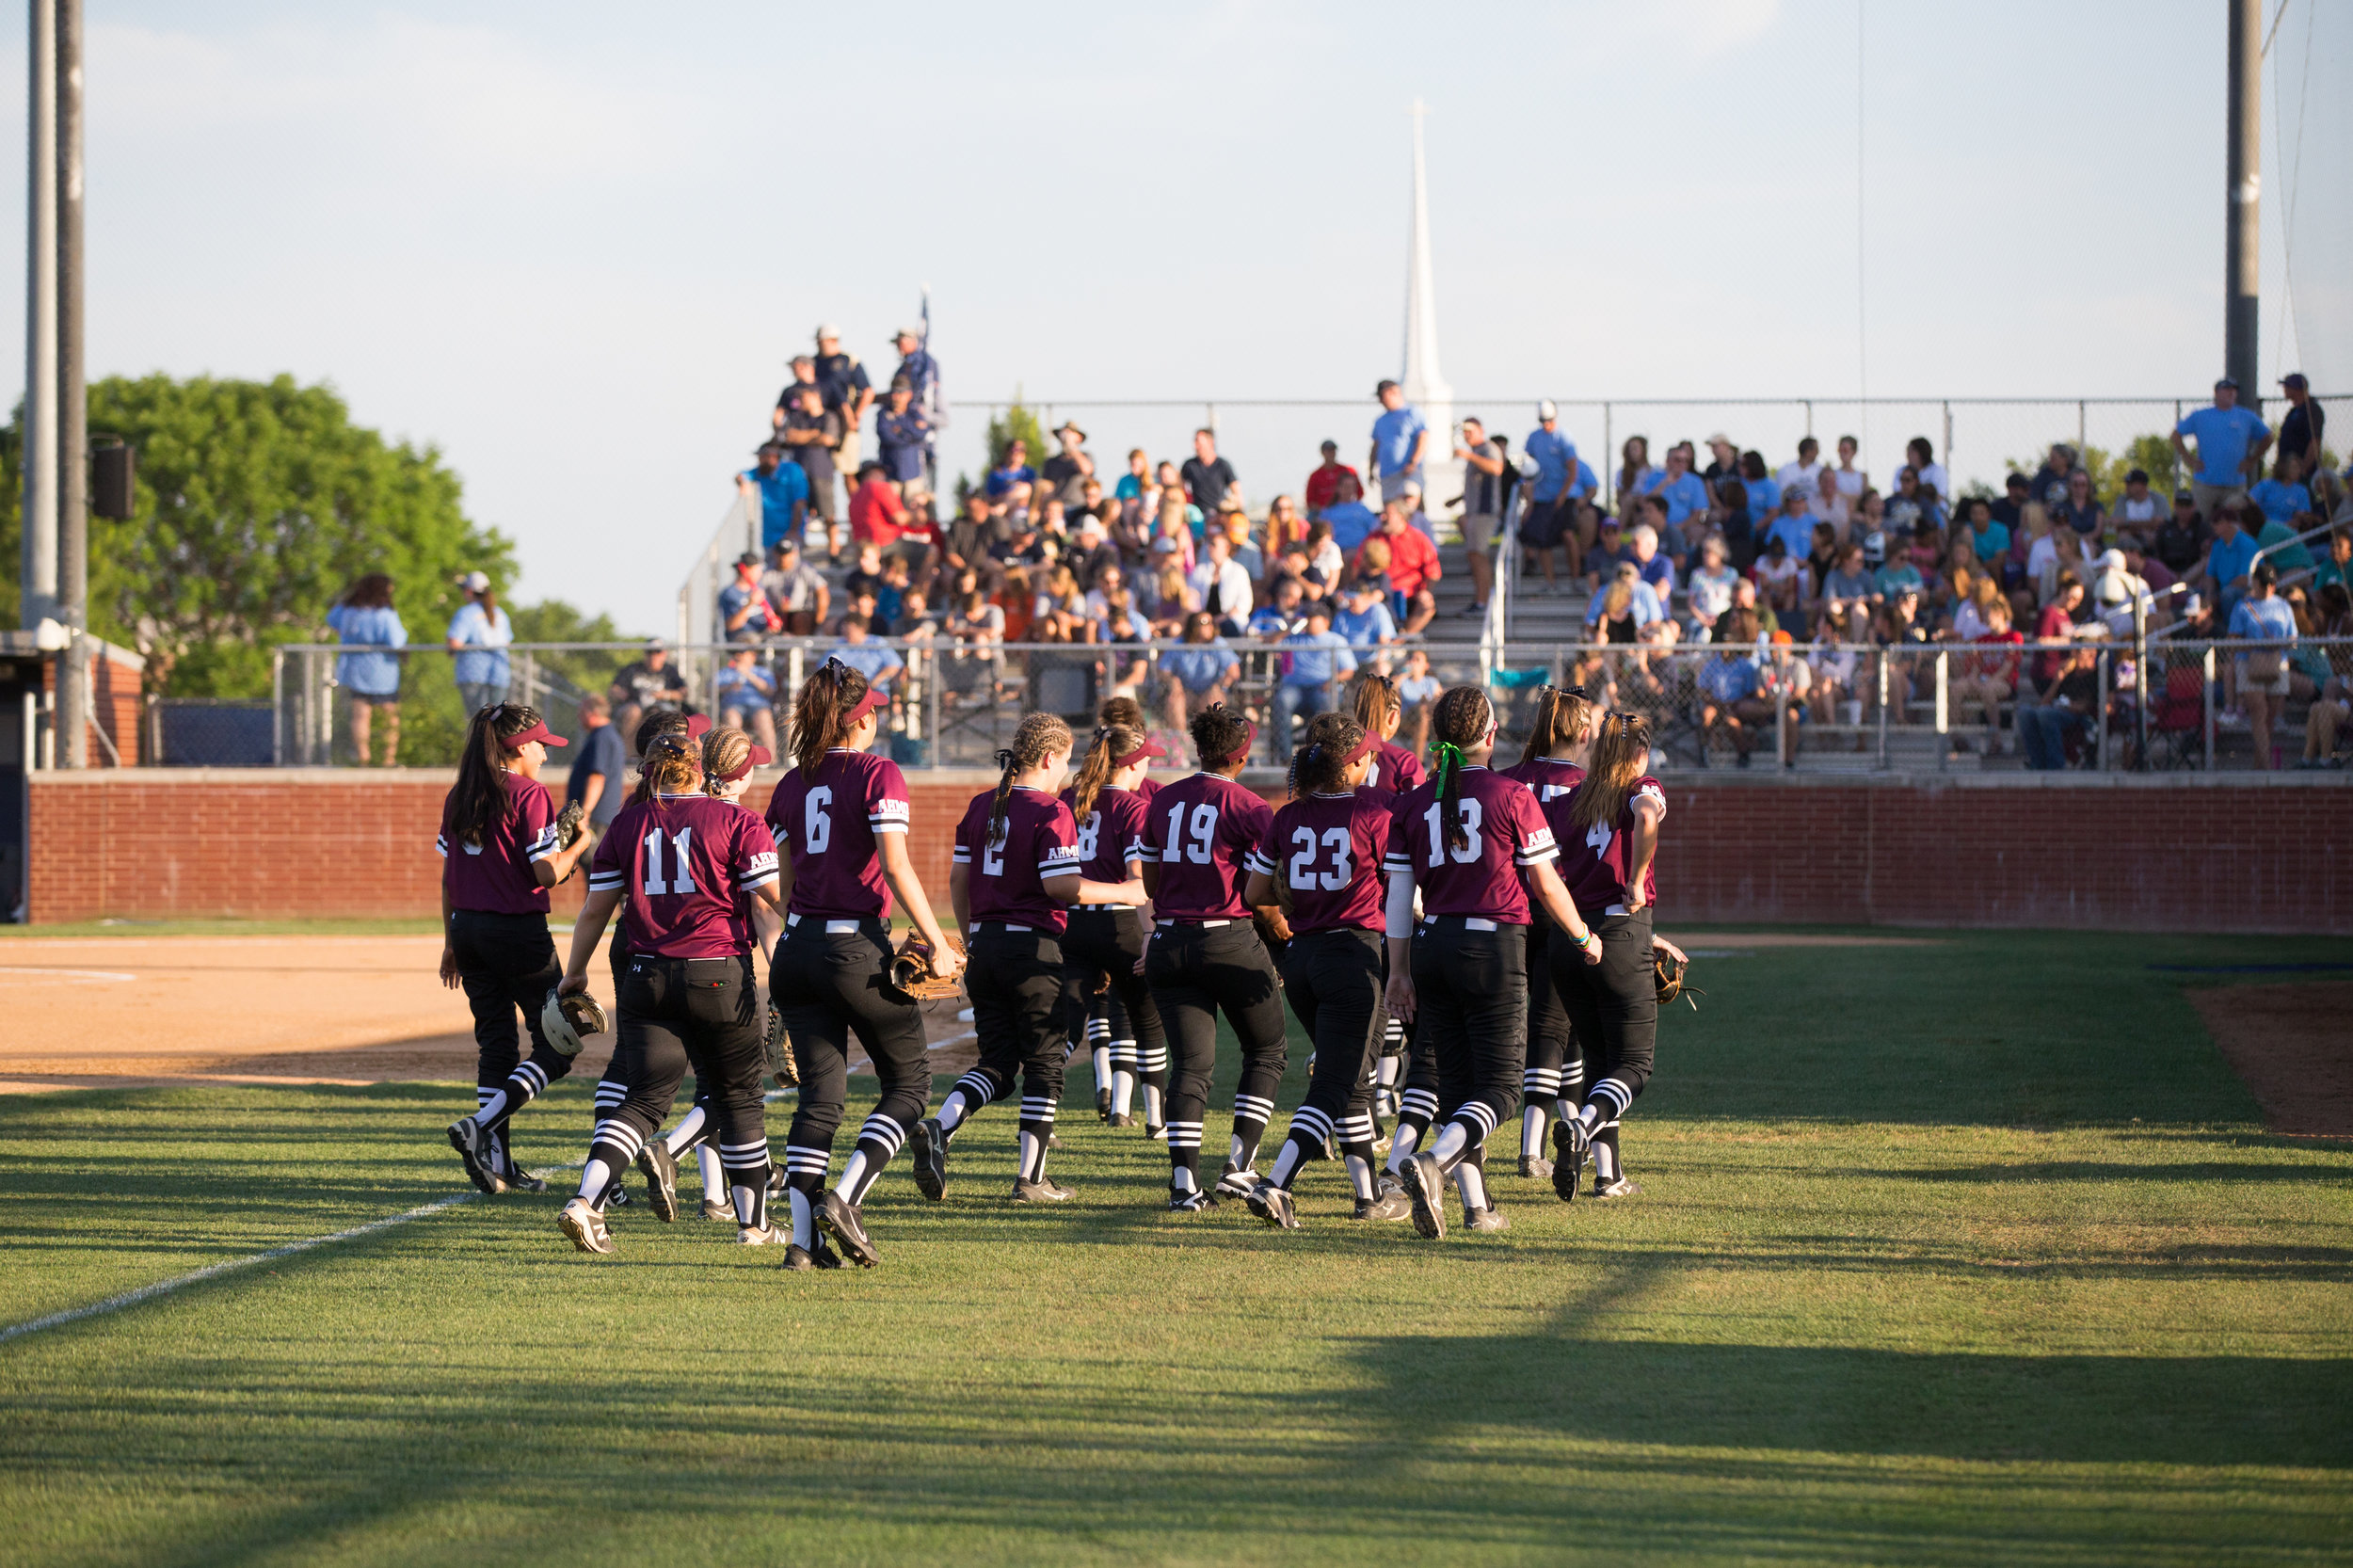 5_18 Wylie Softball-120.jpg